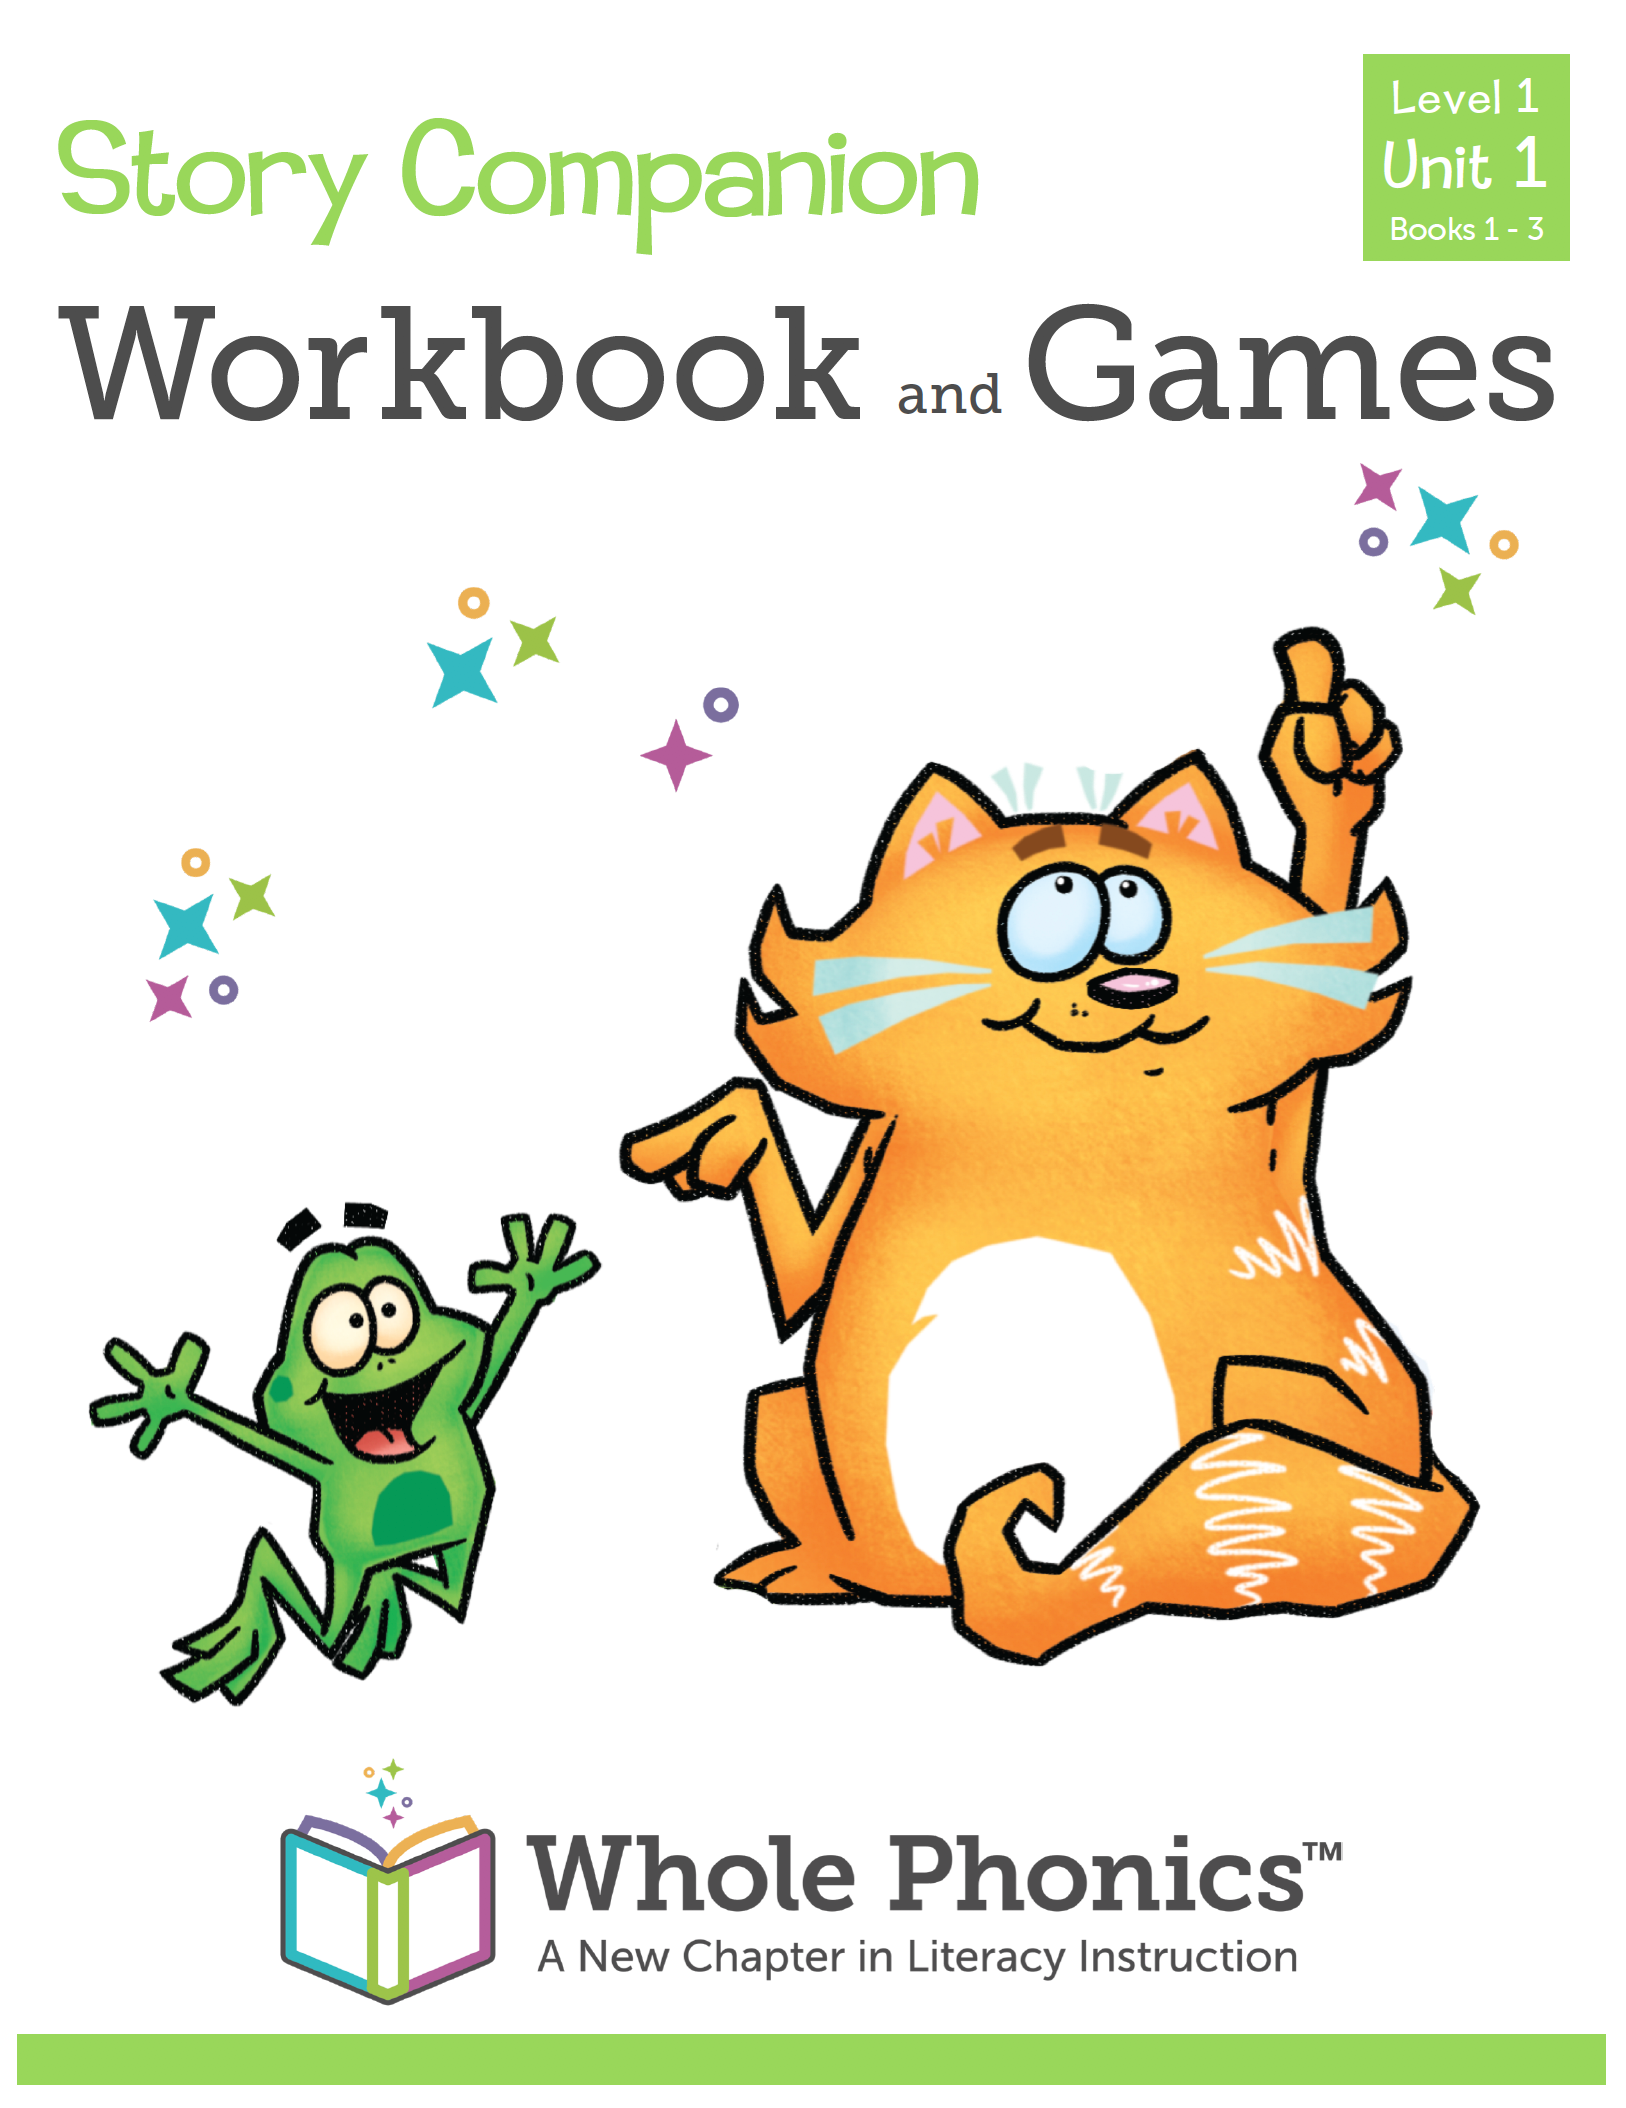 Unit 1 Workbook